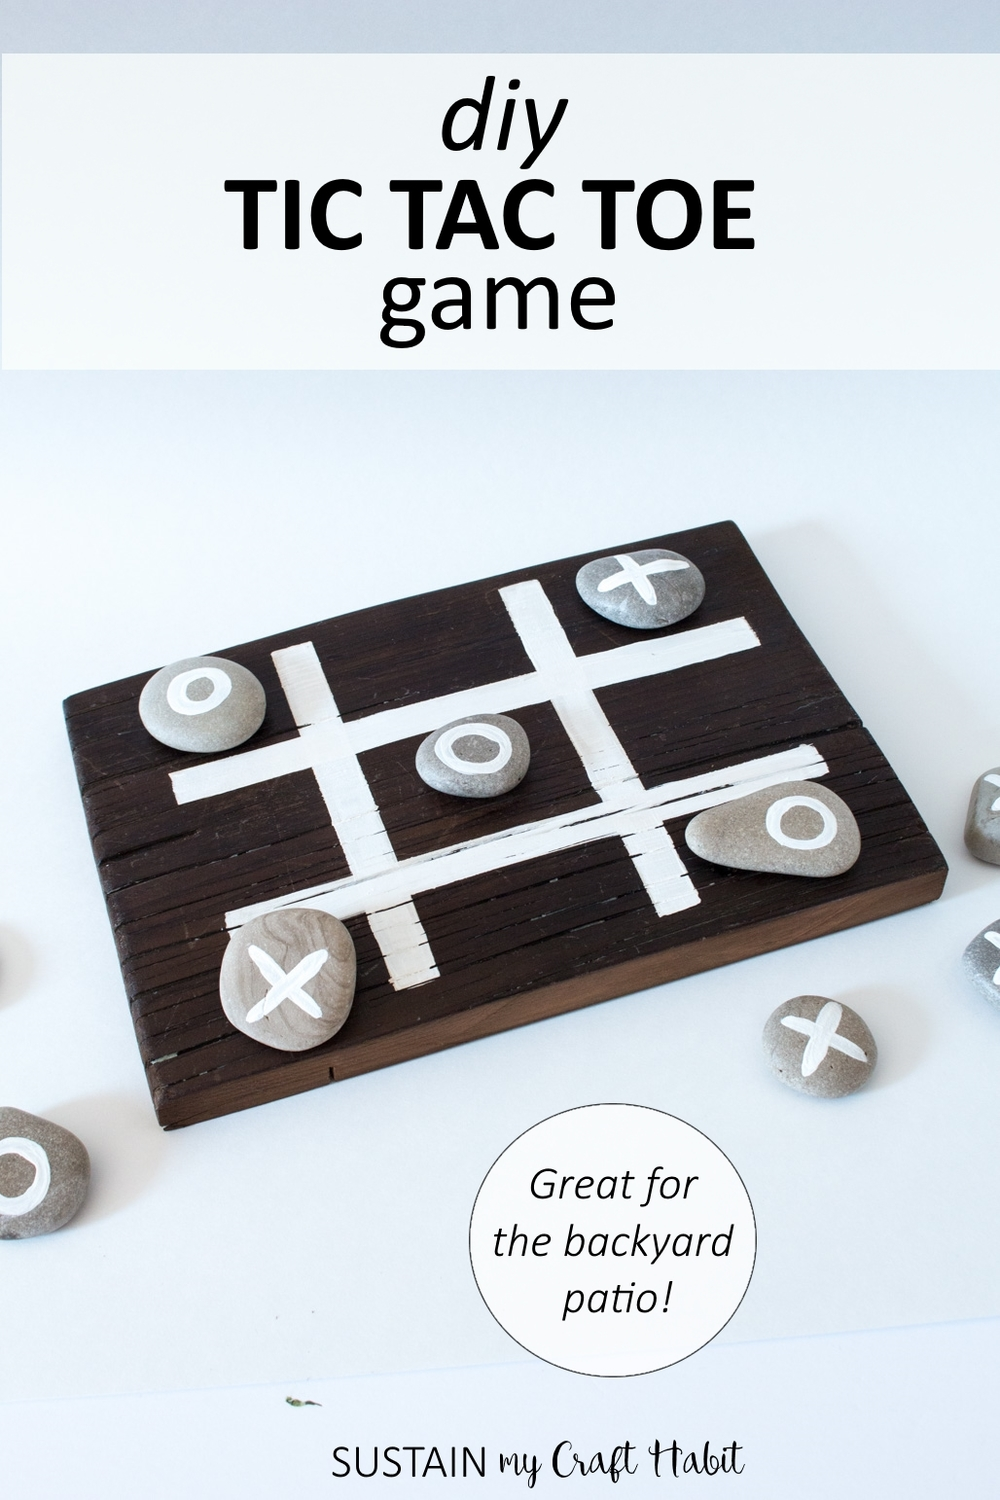 Make an easy tic tac toe game with rocks and a wood board. Great for the back porch or cottage! Video tutorial included.